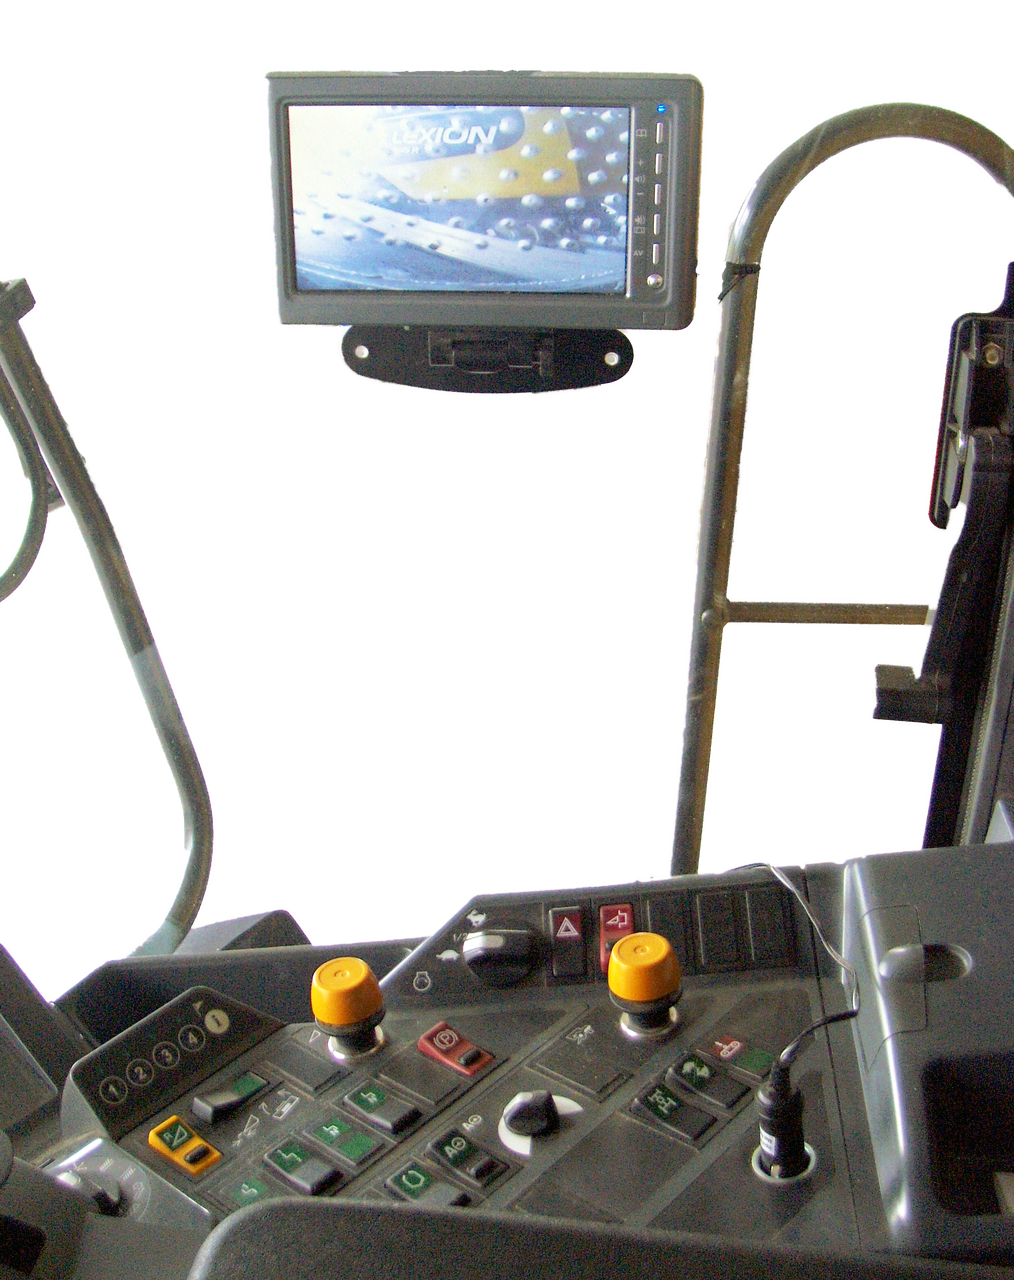 Grain Harvester Unloading Camera IN-CAB monitor